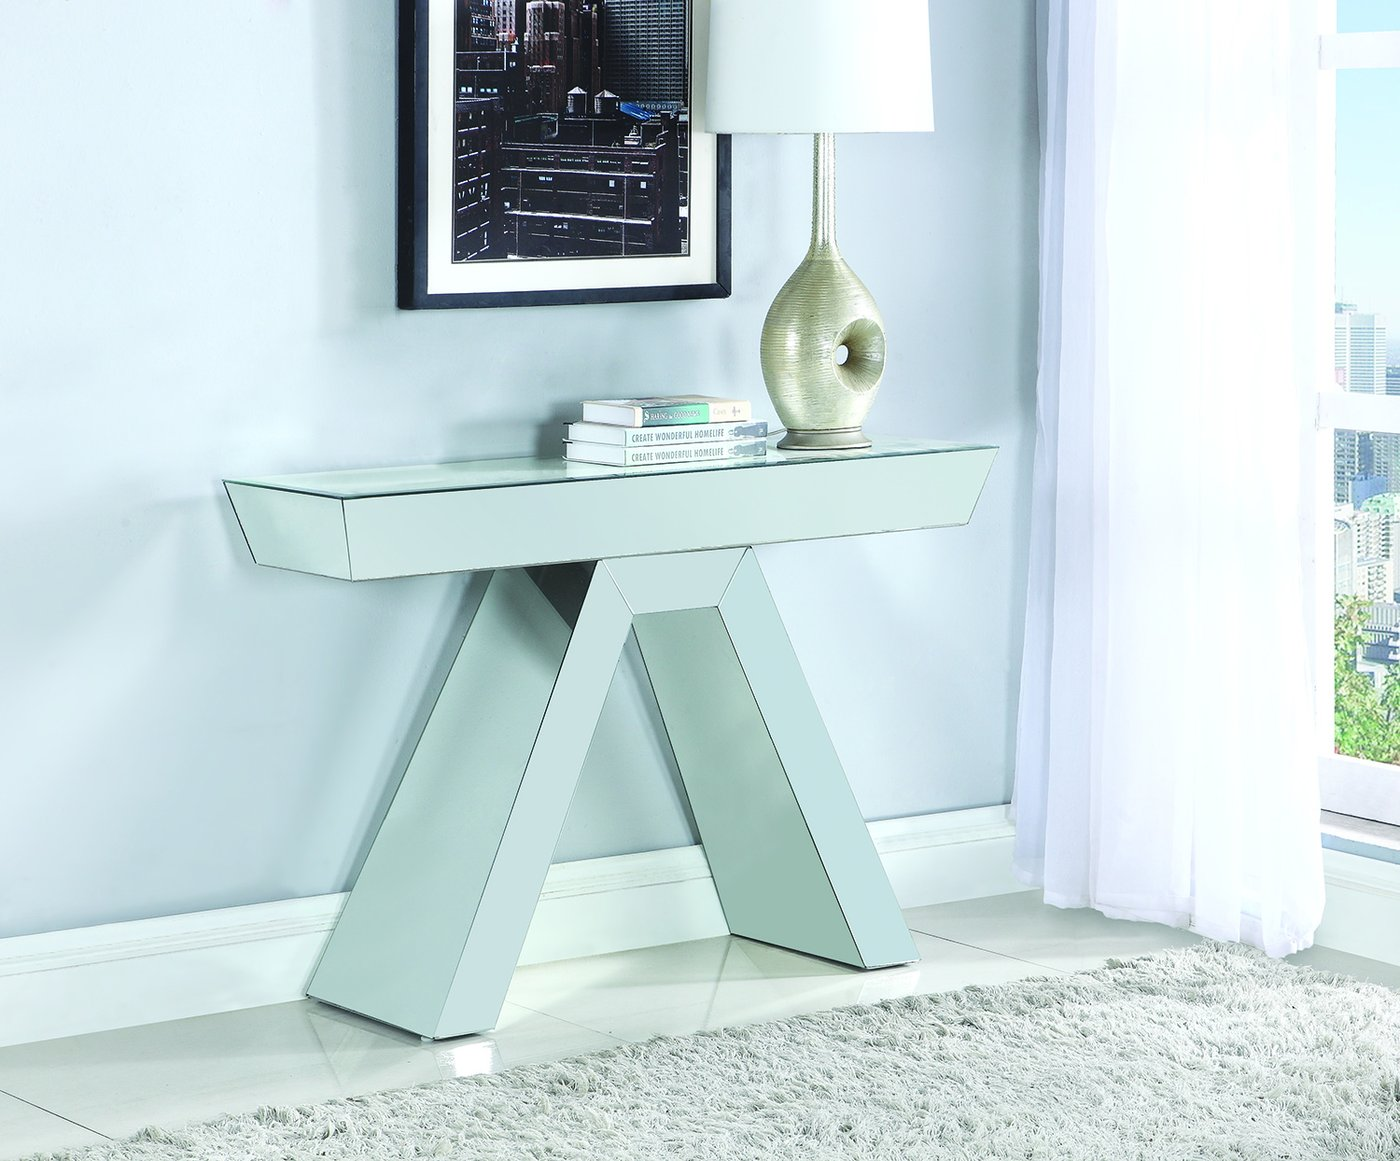 coaster accent tables contemporary mirrored console table dining sets clearance concrete top mix black drum white marble gold coffee long runners grills brass strip between carpet